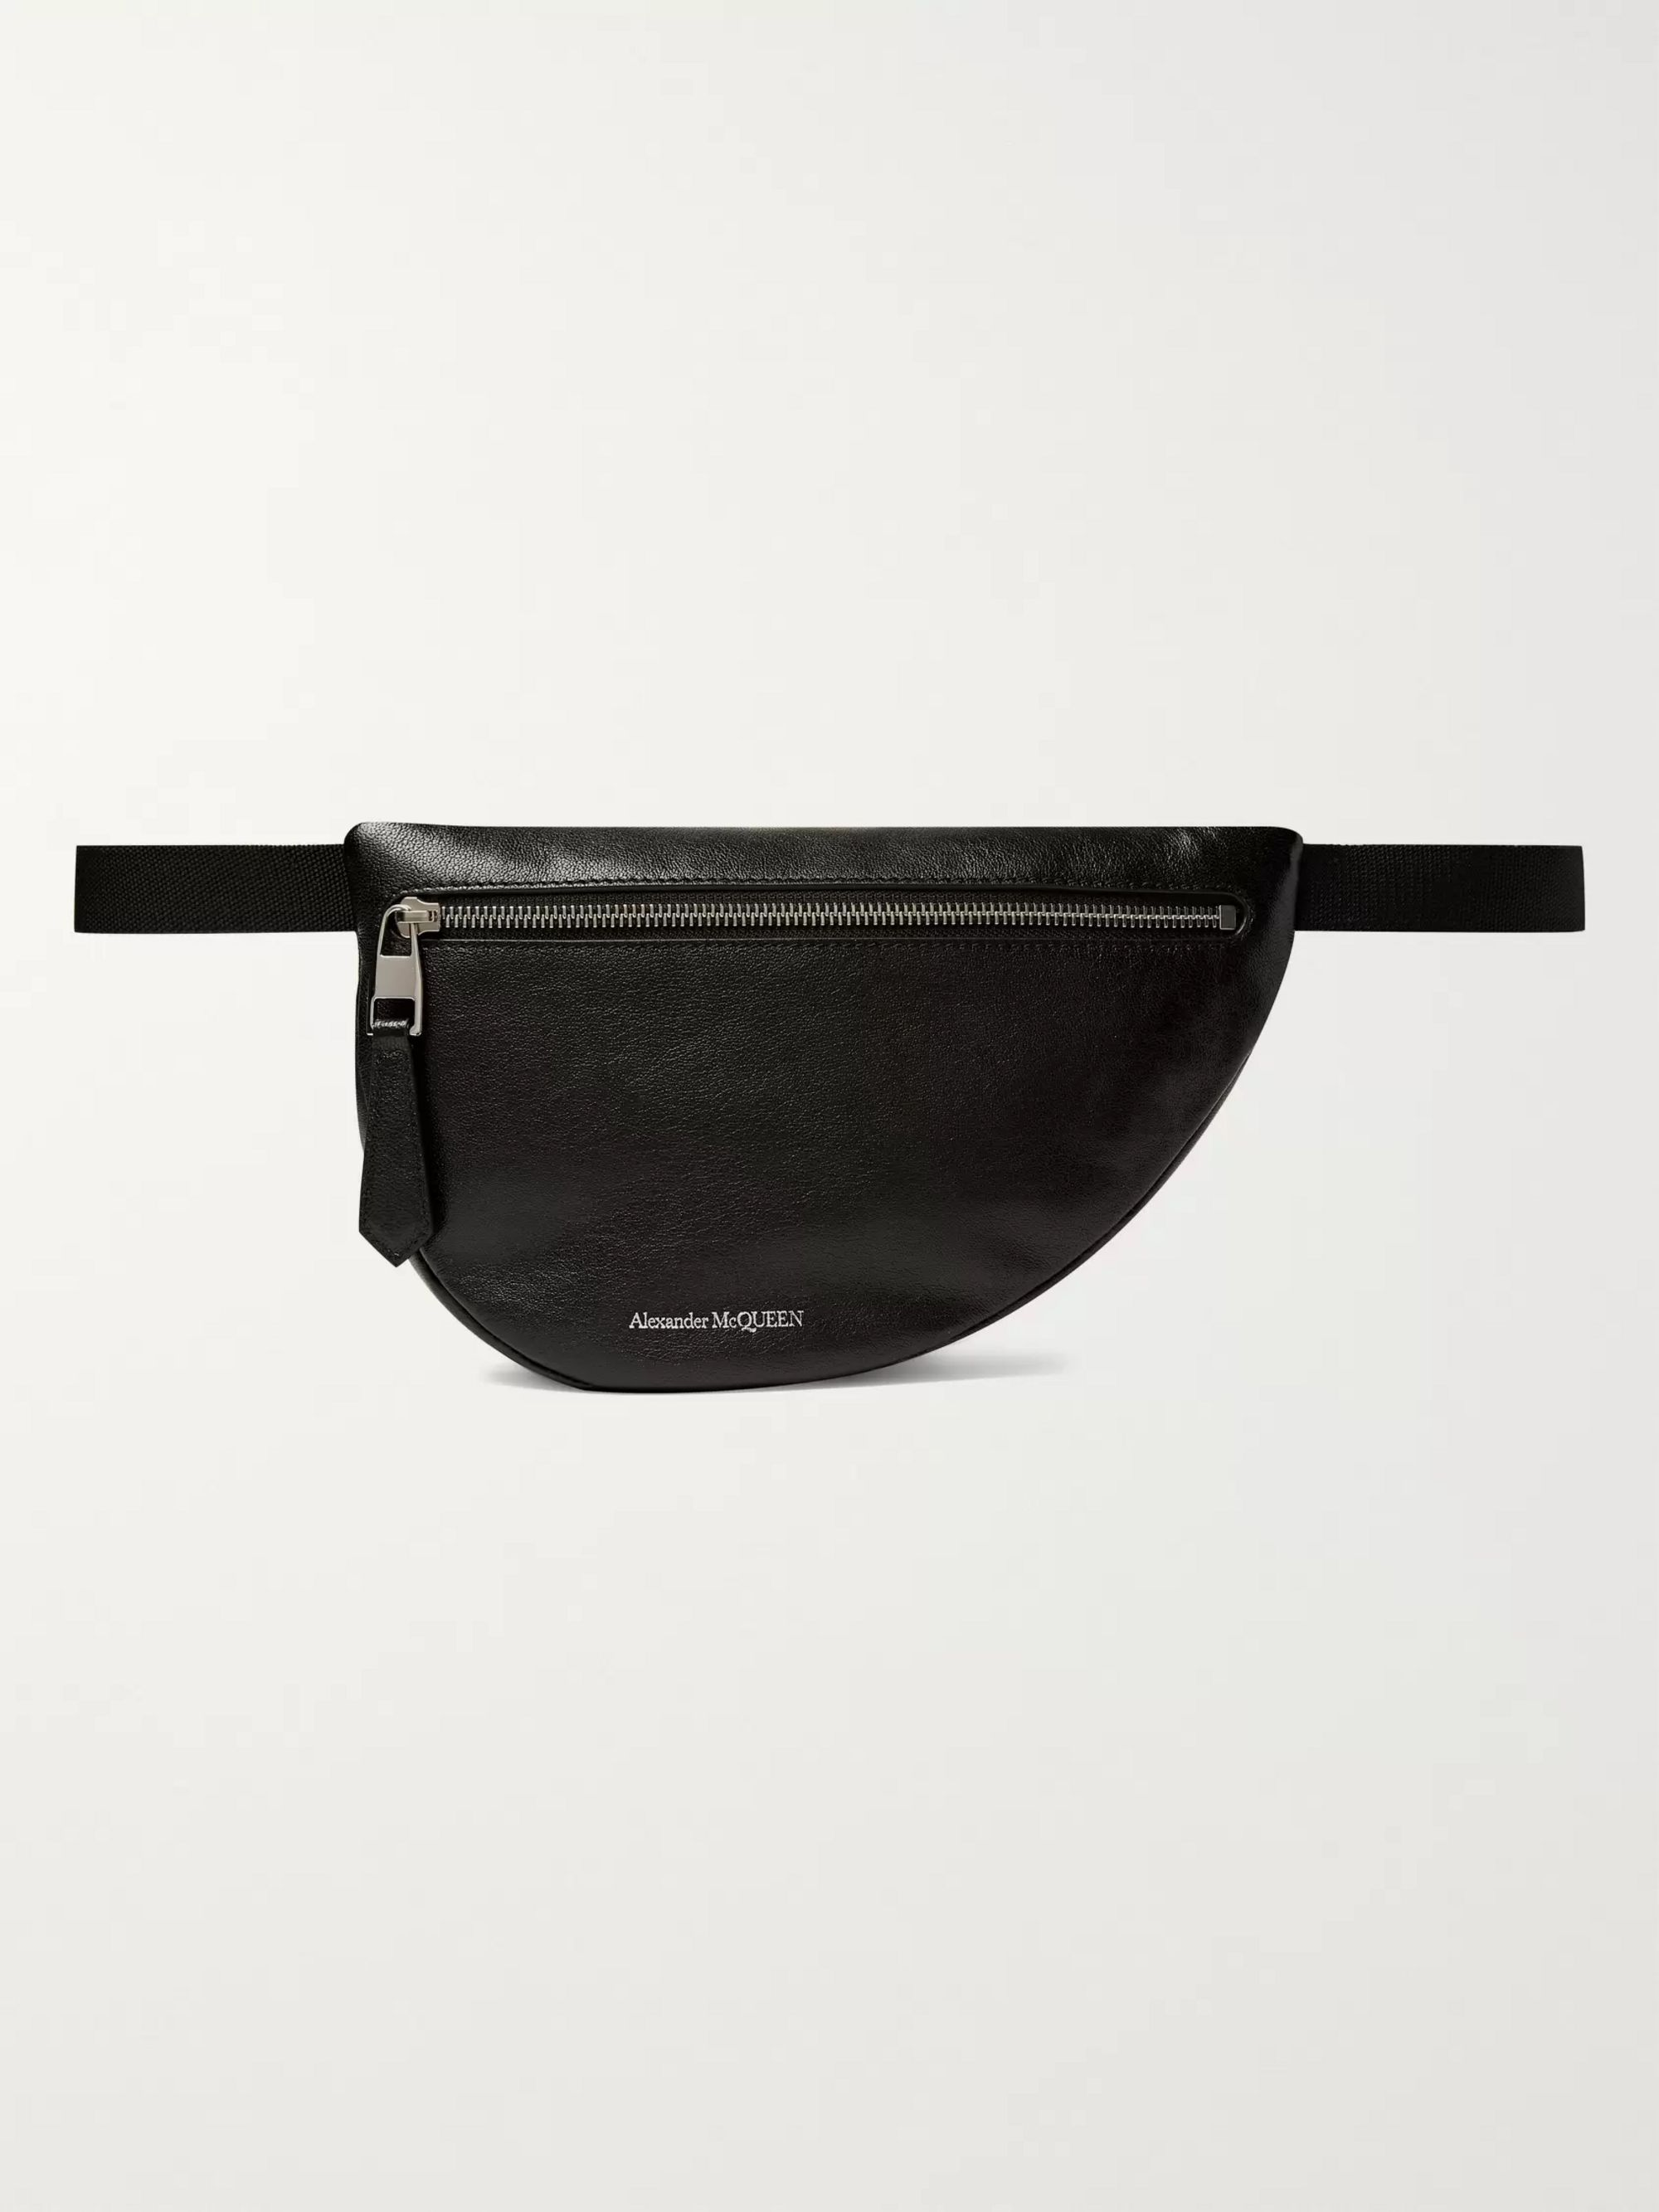 Alexander McQueen Leather Belt Bag